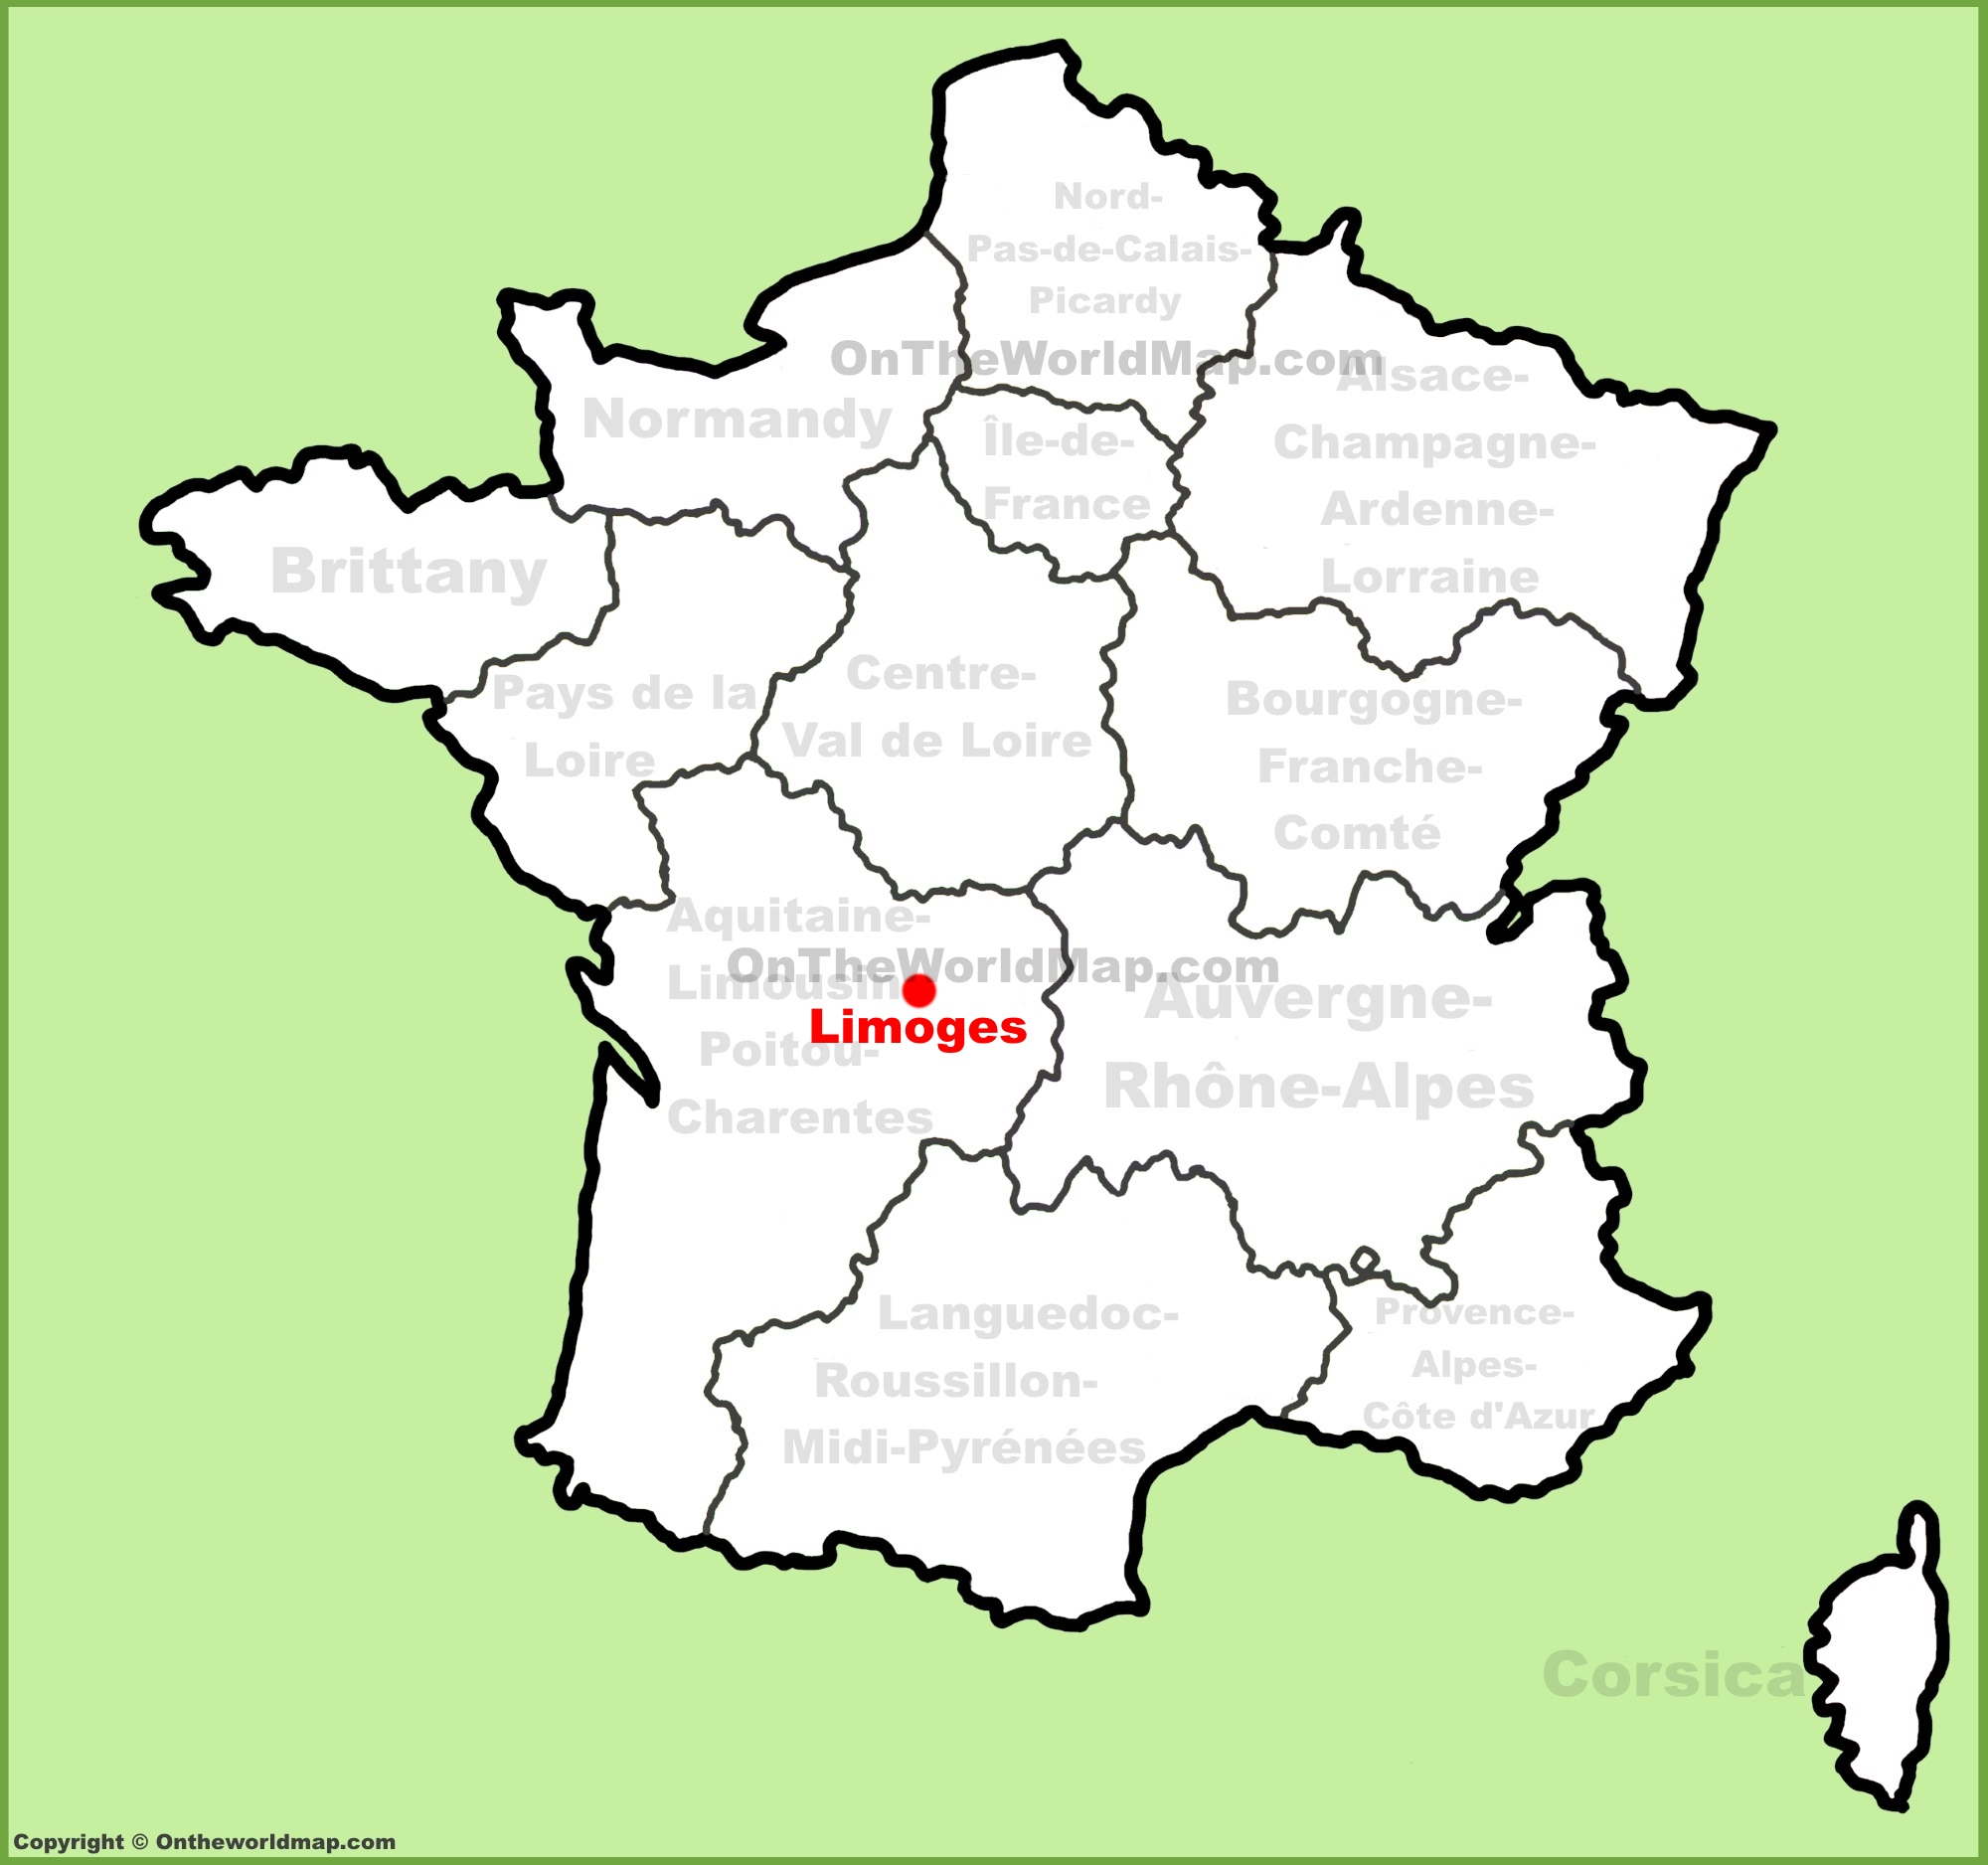 Limoges Location On The France Map - Limoges france map